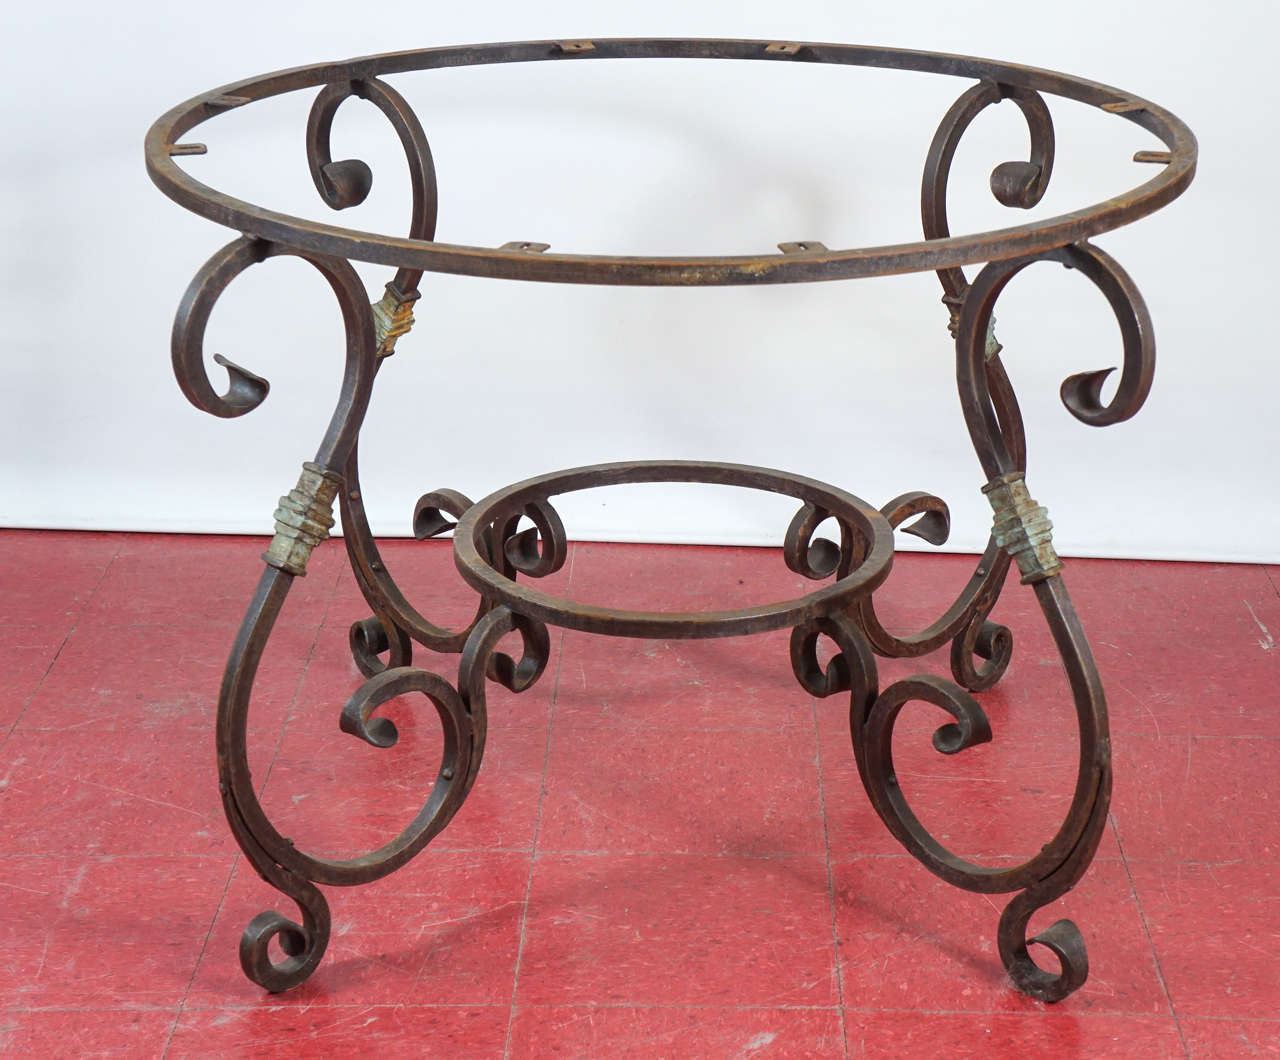 Forged Rustic Outdoor or Indoor Round Teak Wood and Metal Base Dining Table For Sale